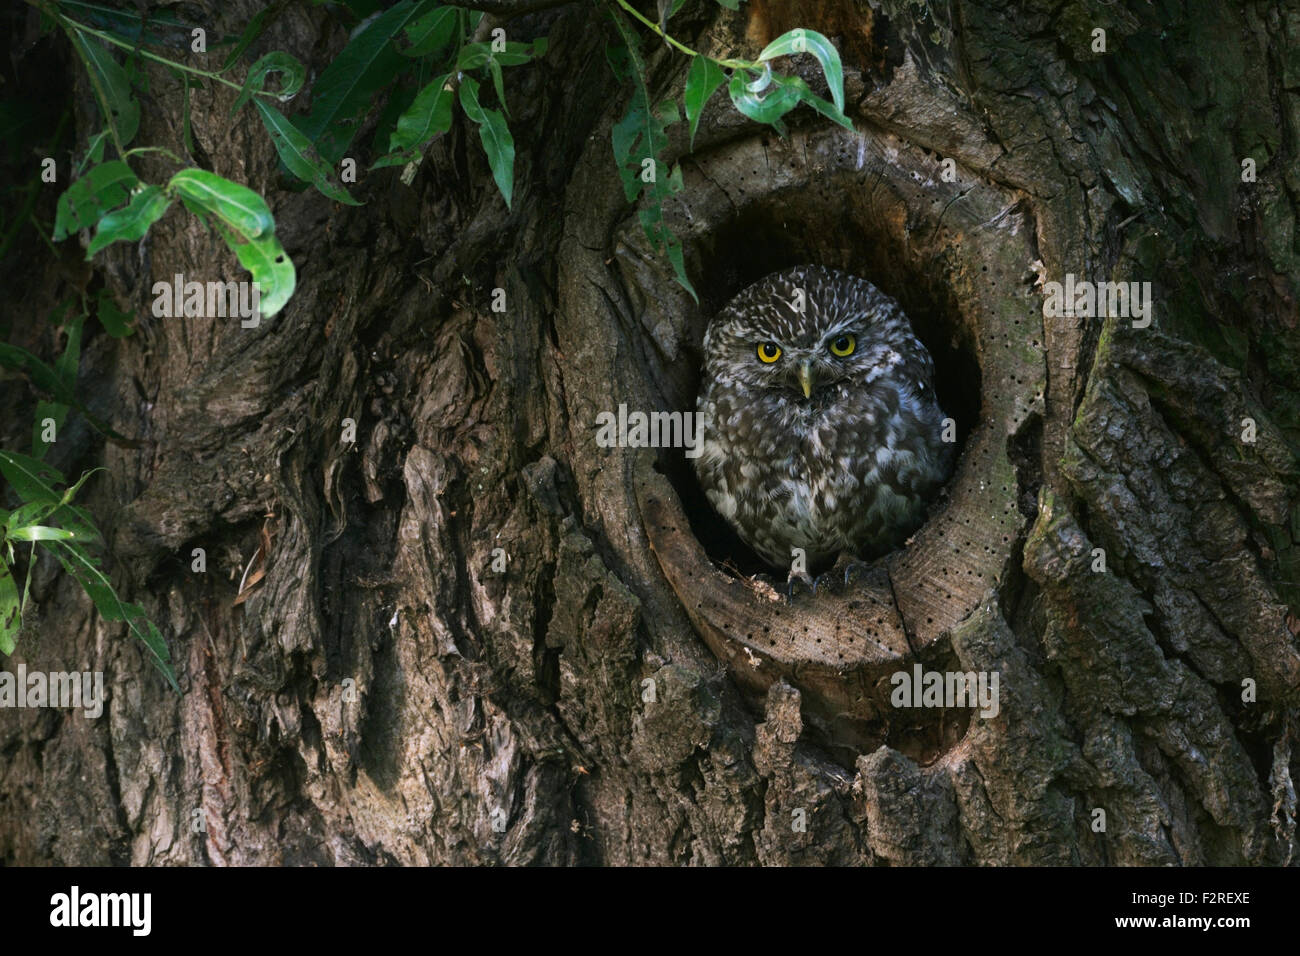 Minervas Owl / Little Owl / Steinkauz ( Athene noctua ) stands in, looking out of its natural tree hollow. Stock Photo